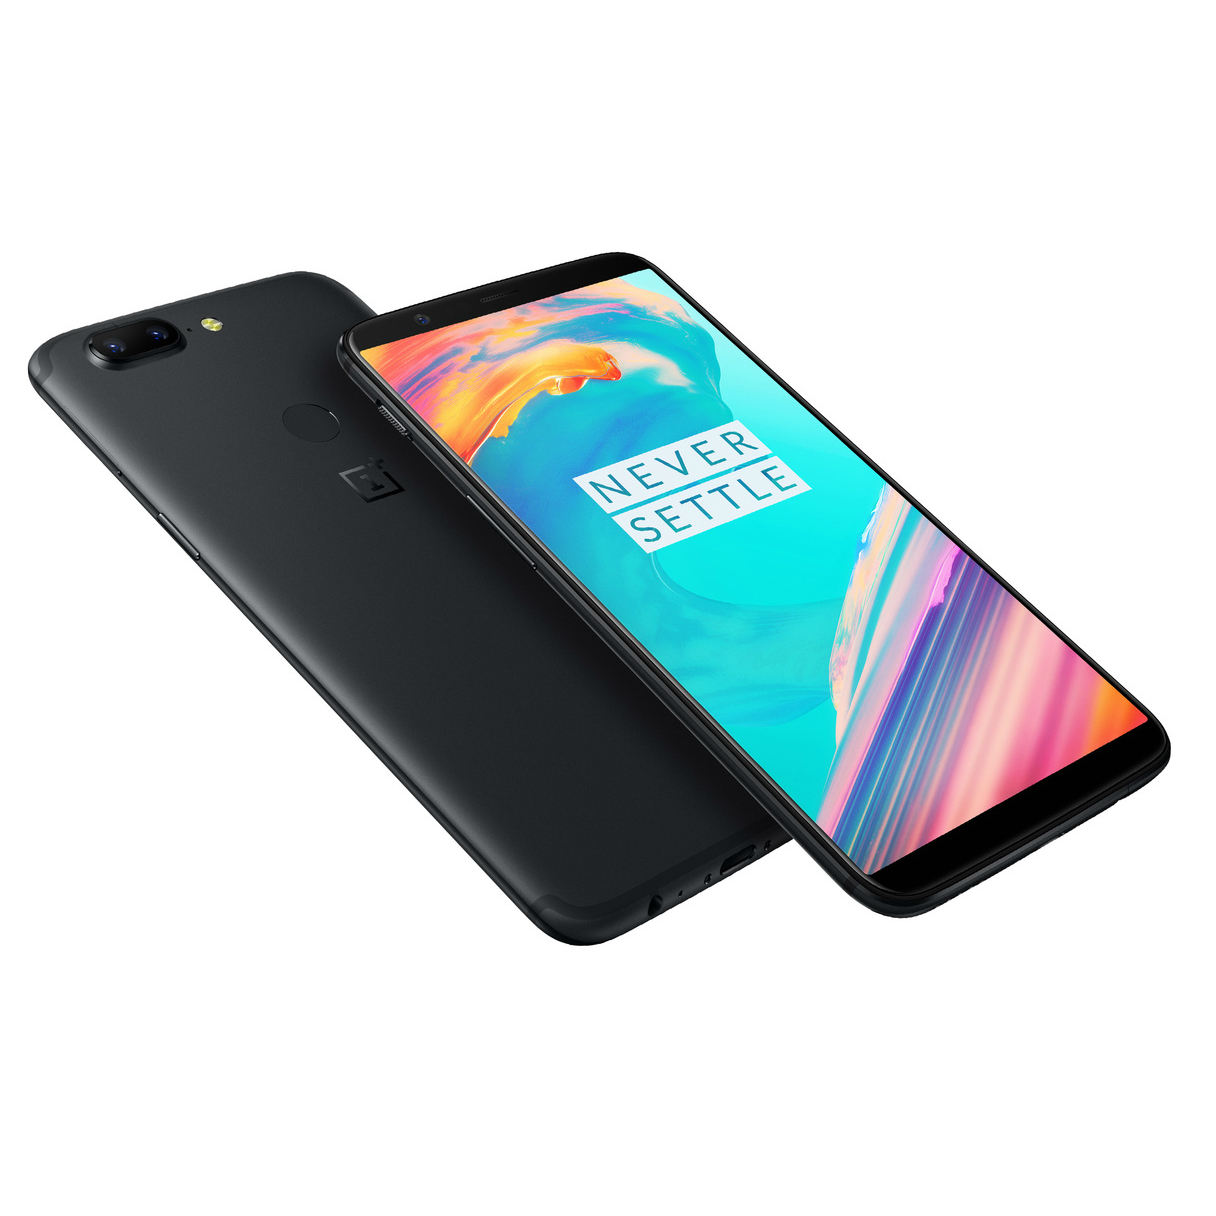 Image of OnePlus 5T A5010 Dual Sim 4G 6GB/64GB - Midnight Black flashed OS